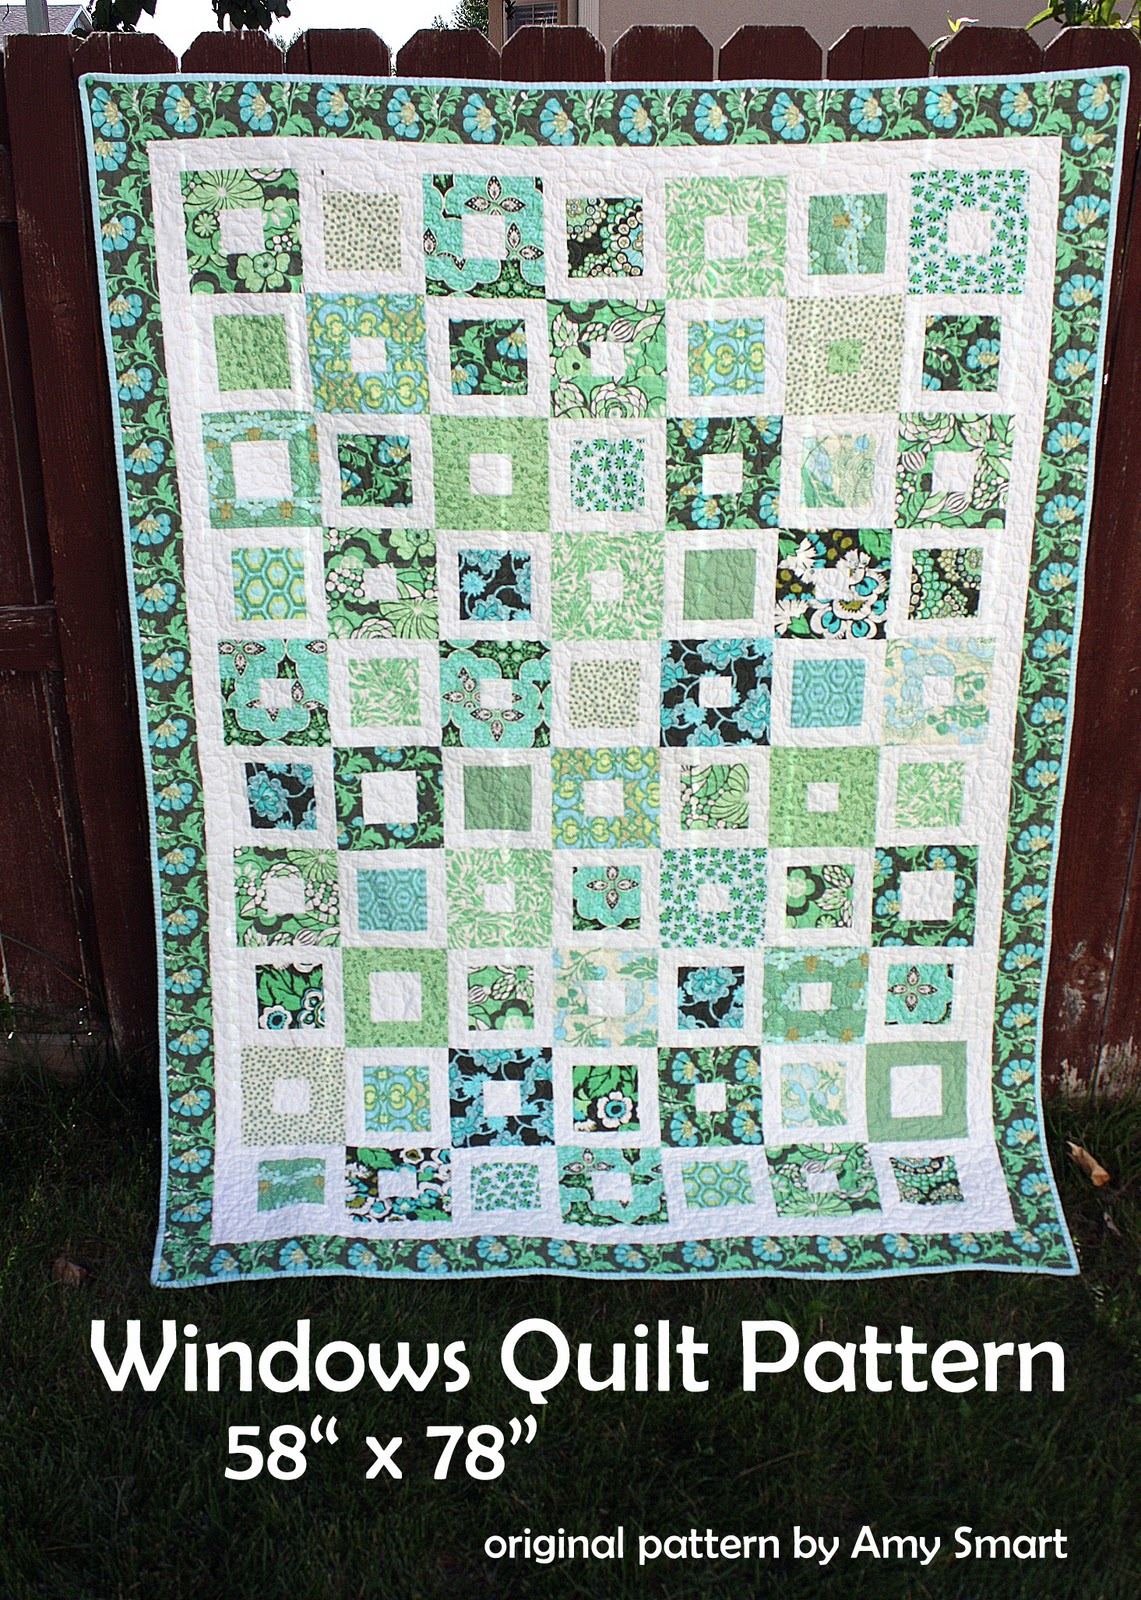 Two new patterns diary of a quilter a quilt blog for New window patterns